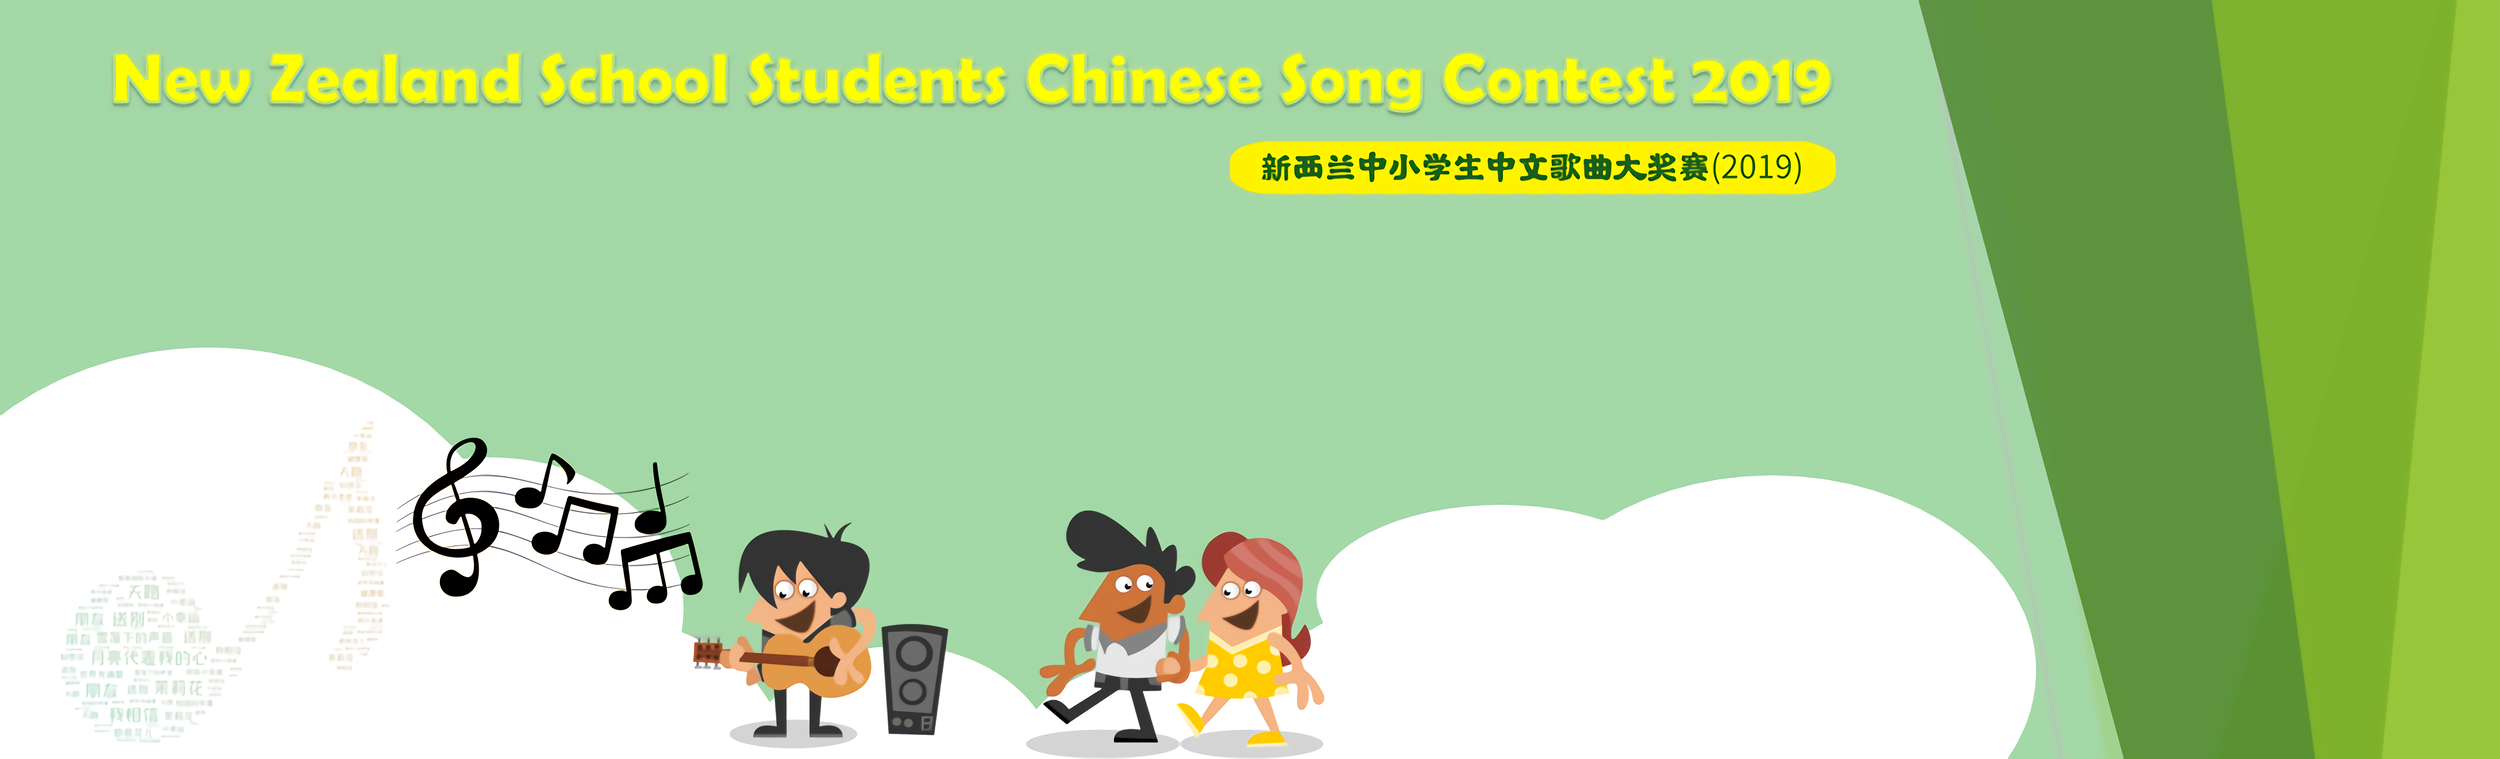 Higher REs bannernew-Chinese song contest (002).png